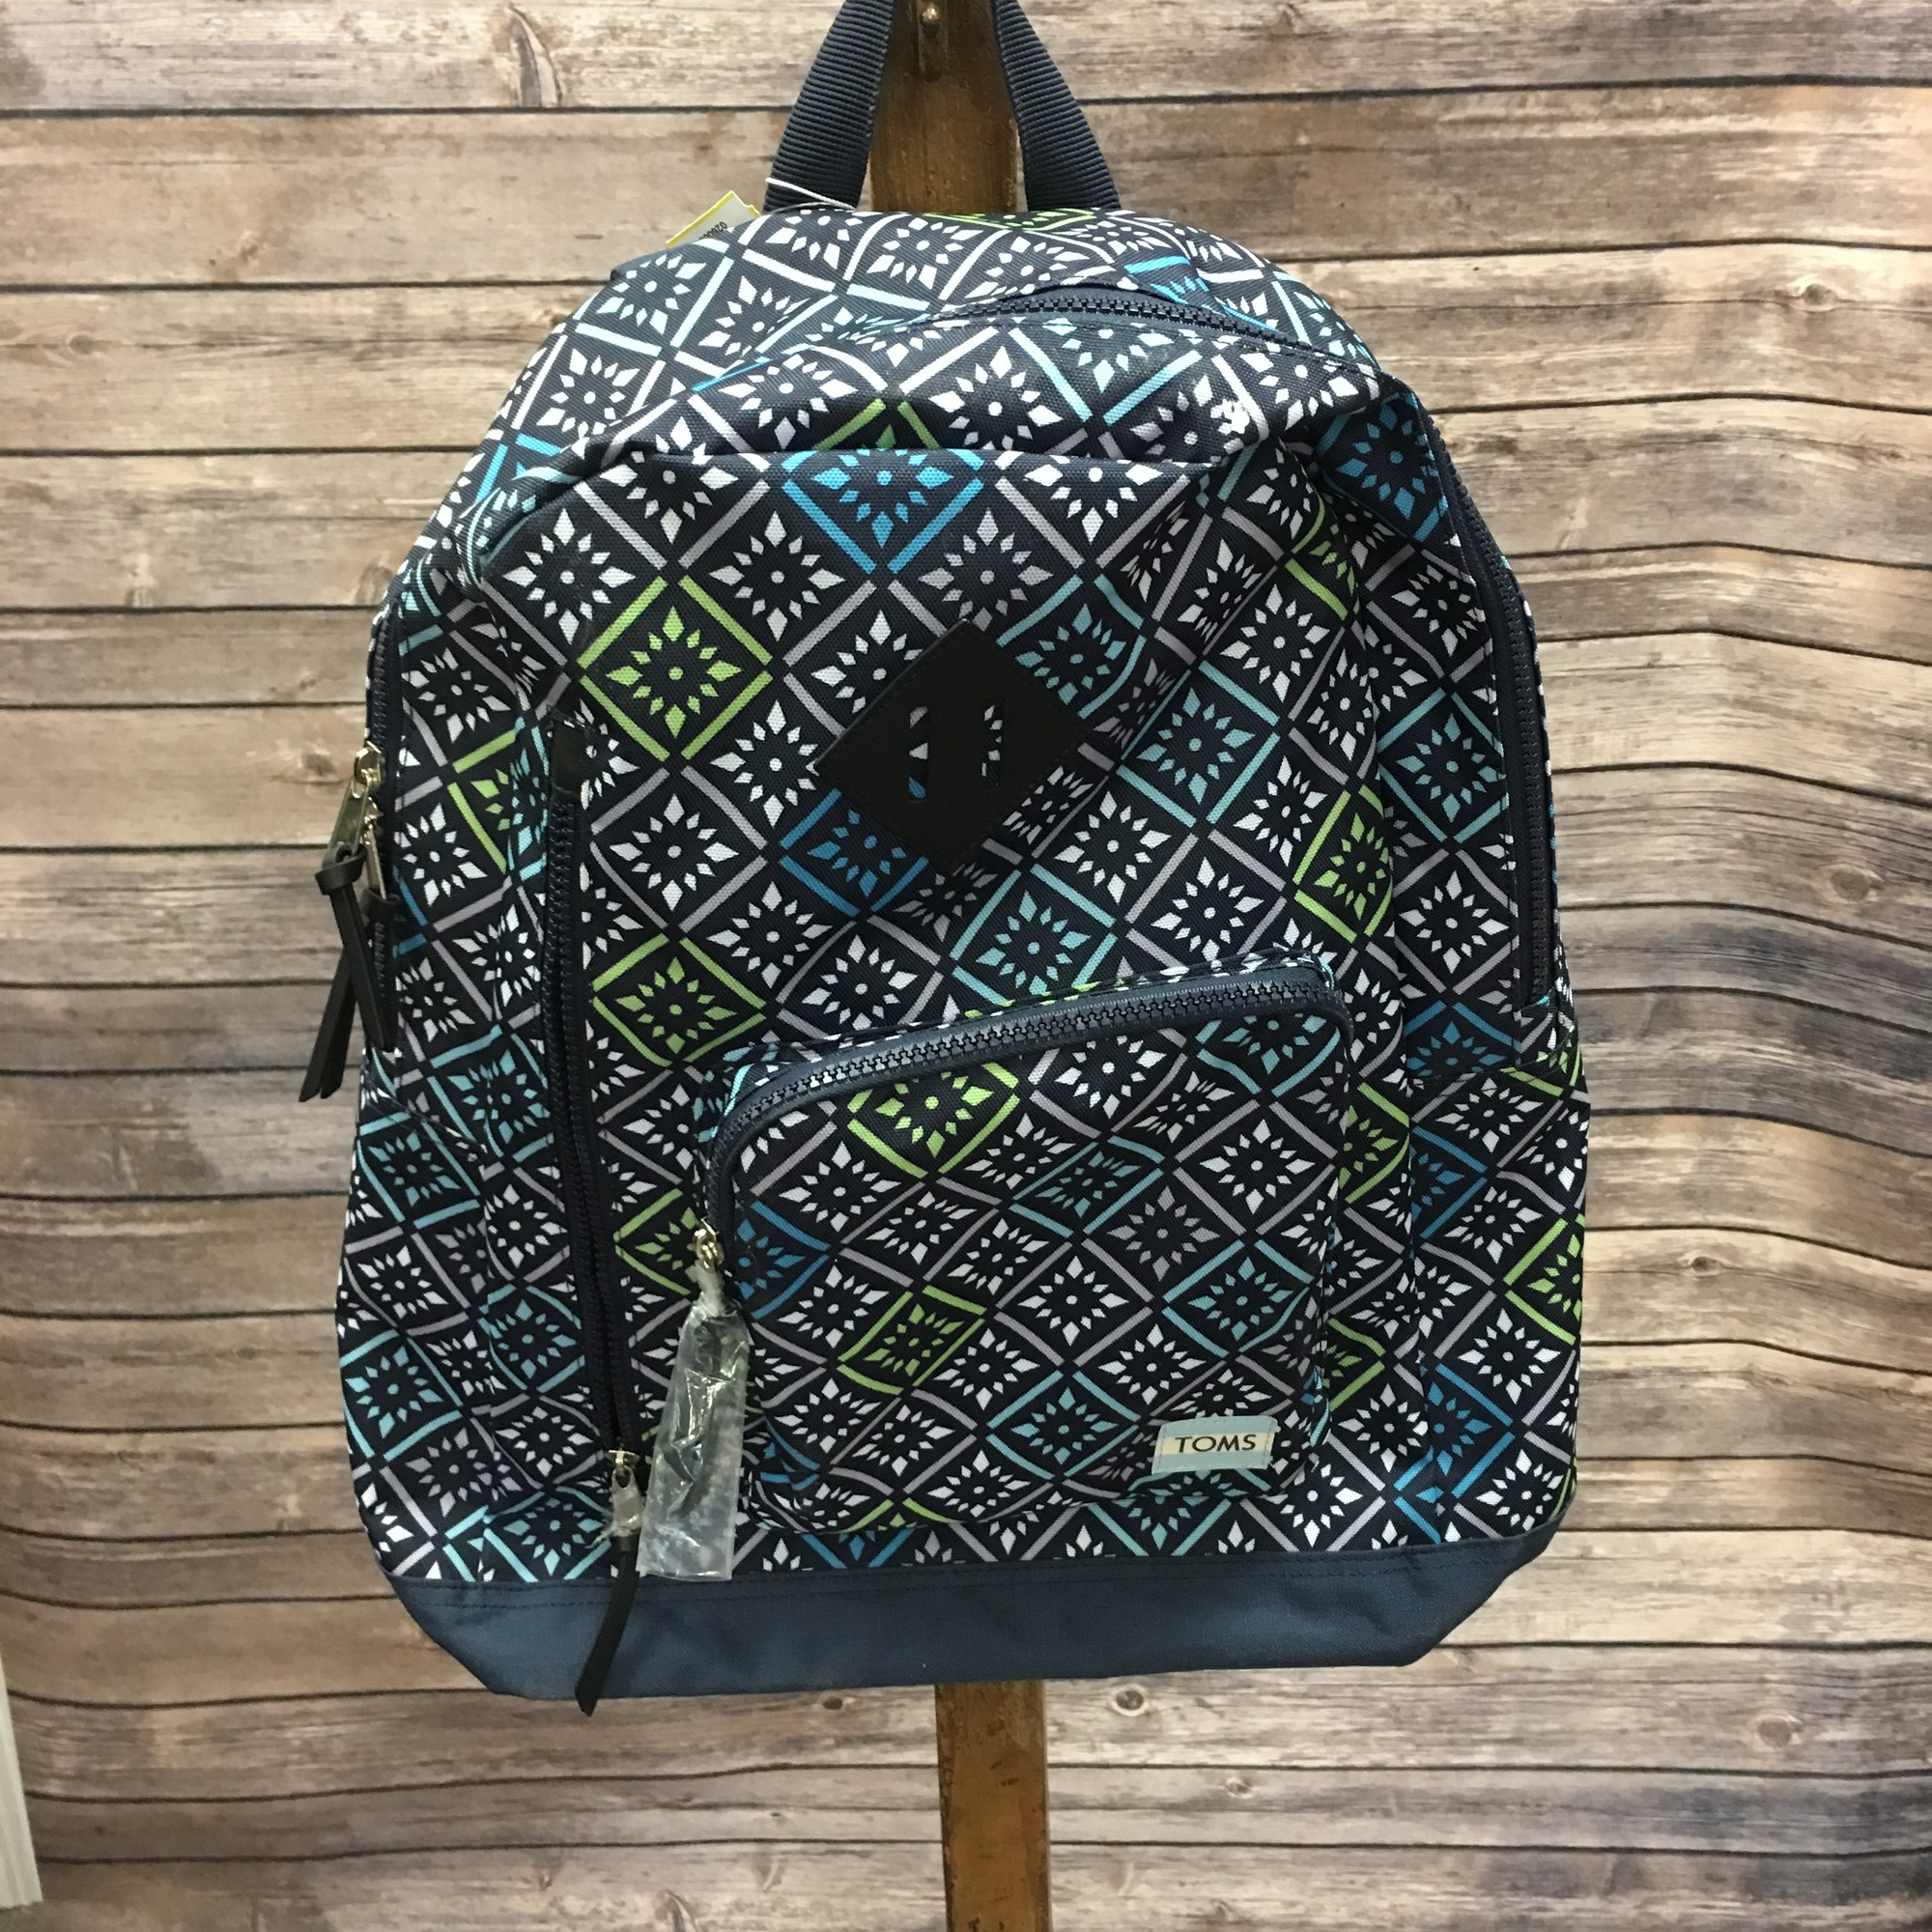 New Toms Backpack, Blue, Size: None